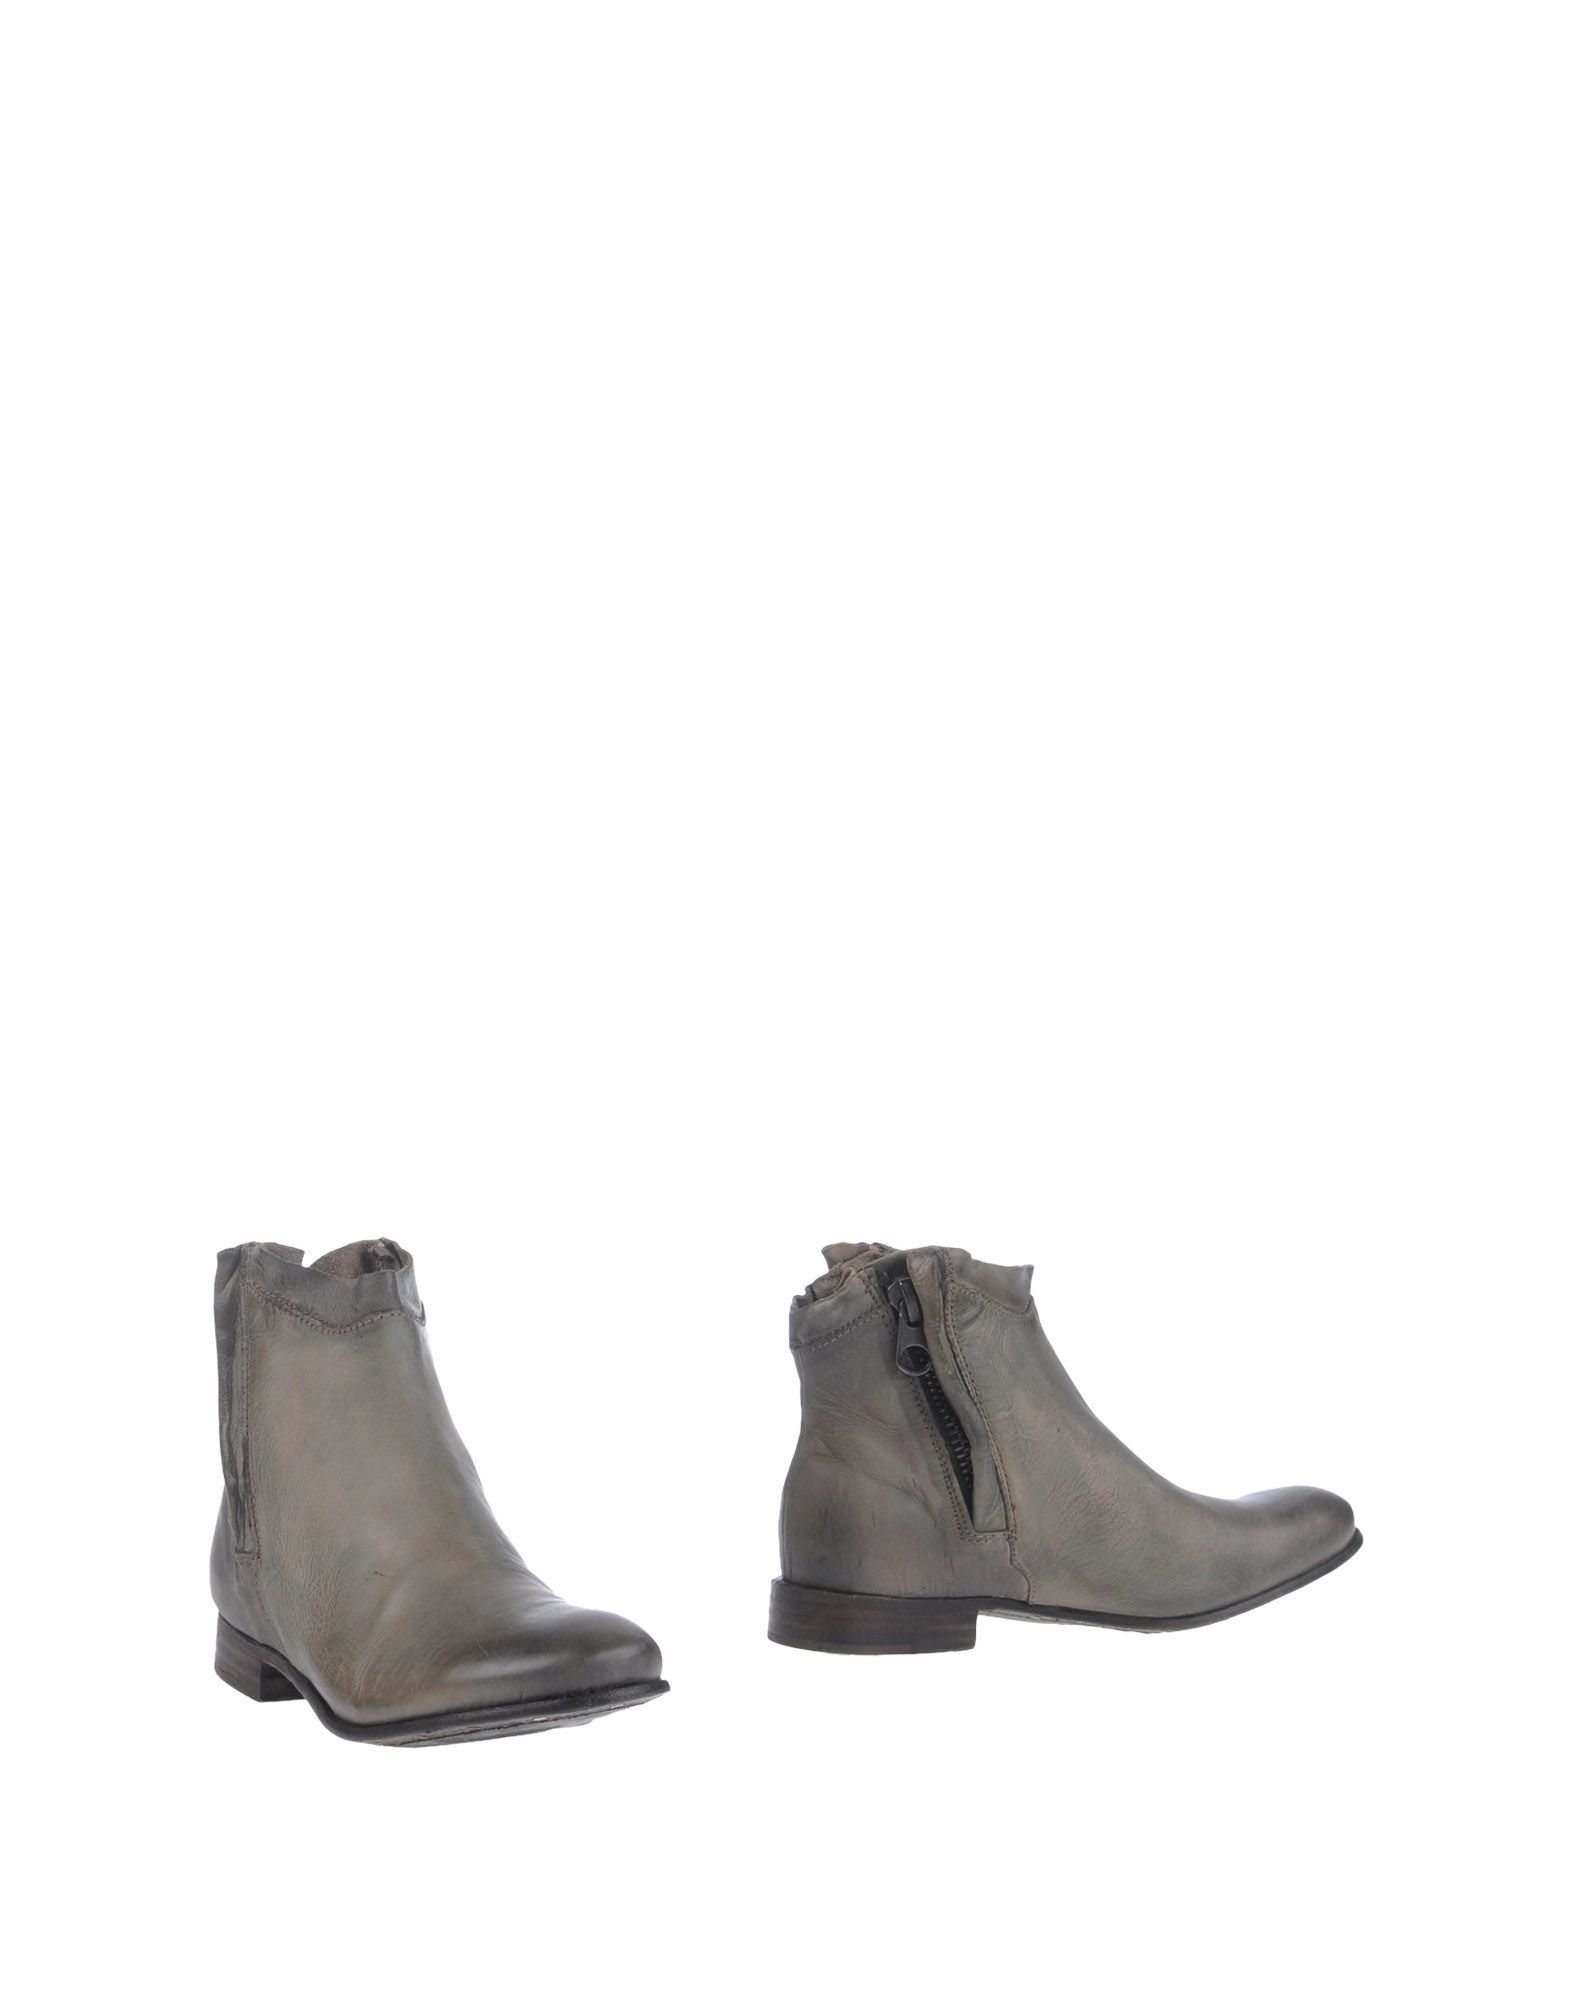 NYLO Ankle Boot in Military Green